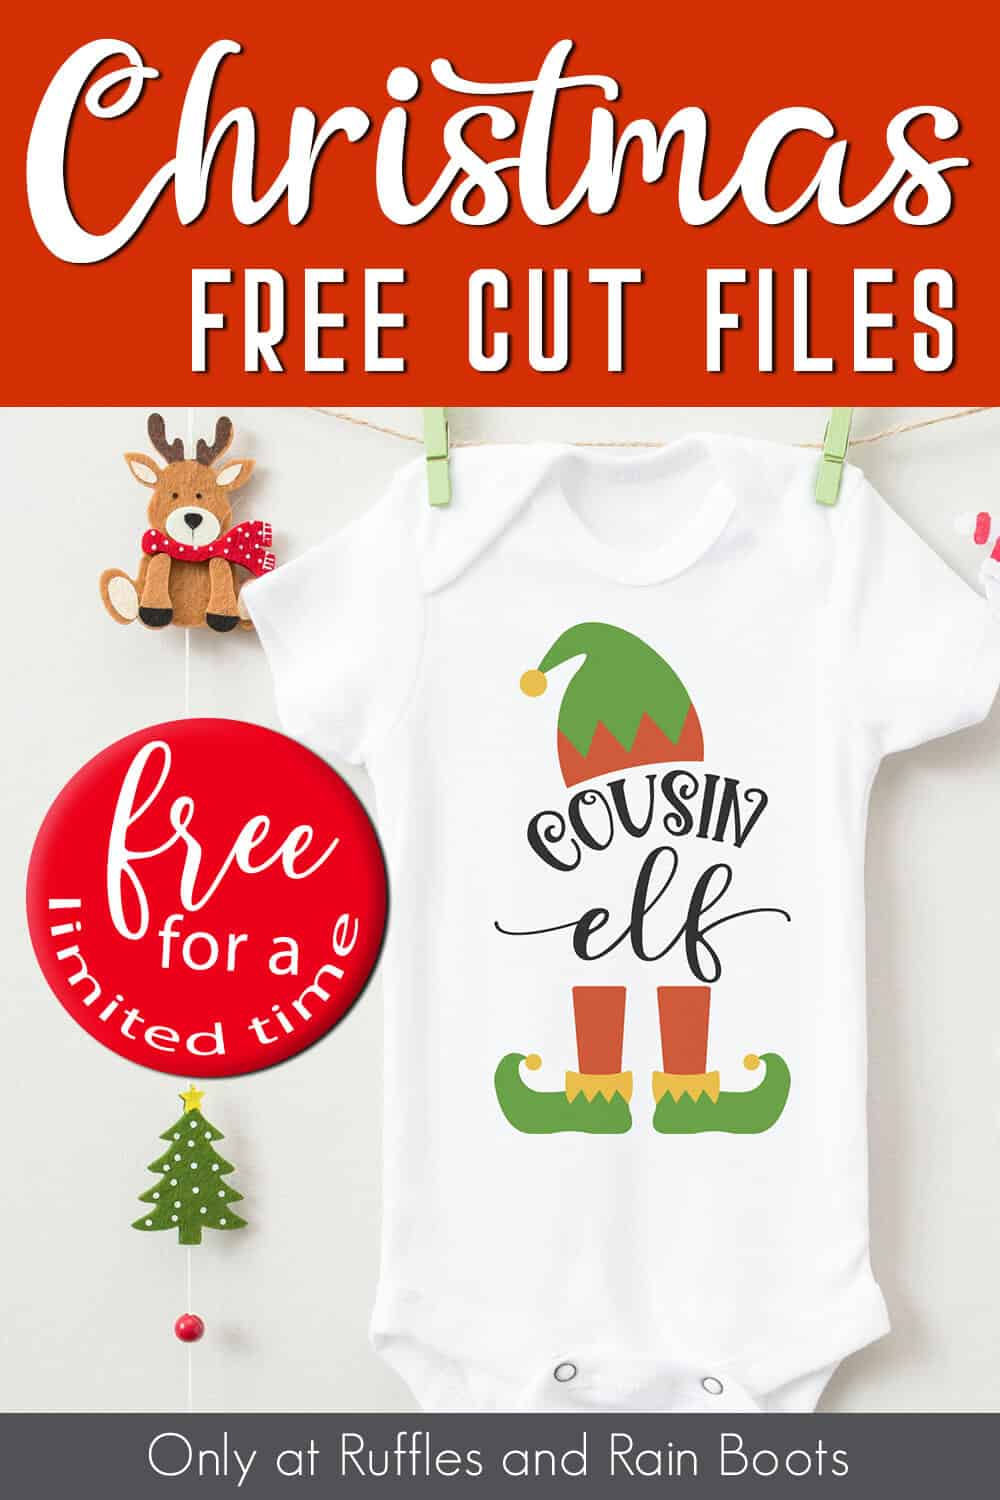 onesie with an elf cut file for Cricut with text which reads christmas free cut files free for a limited time